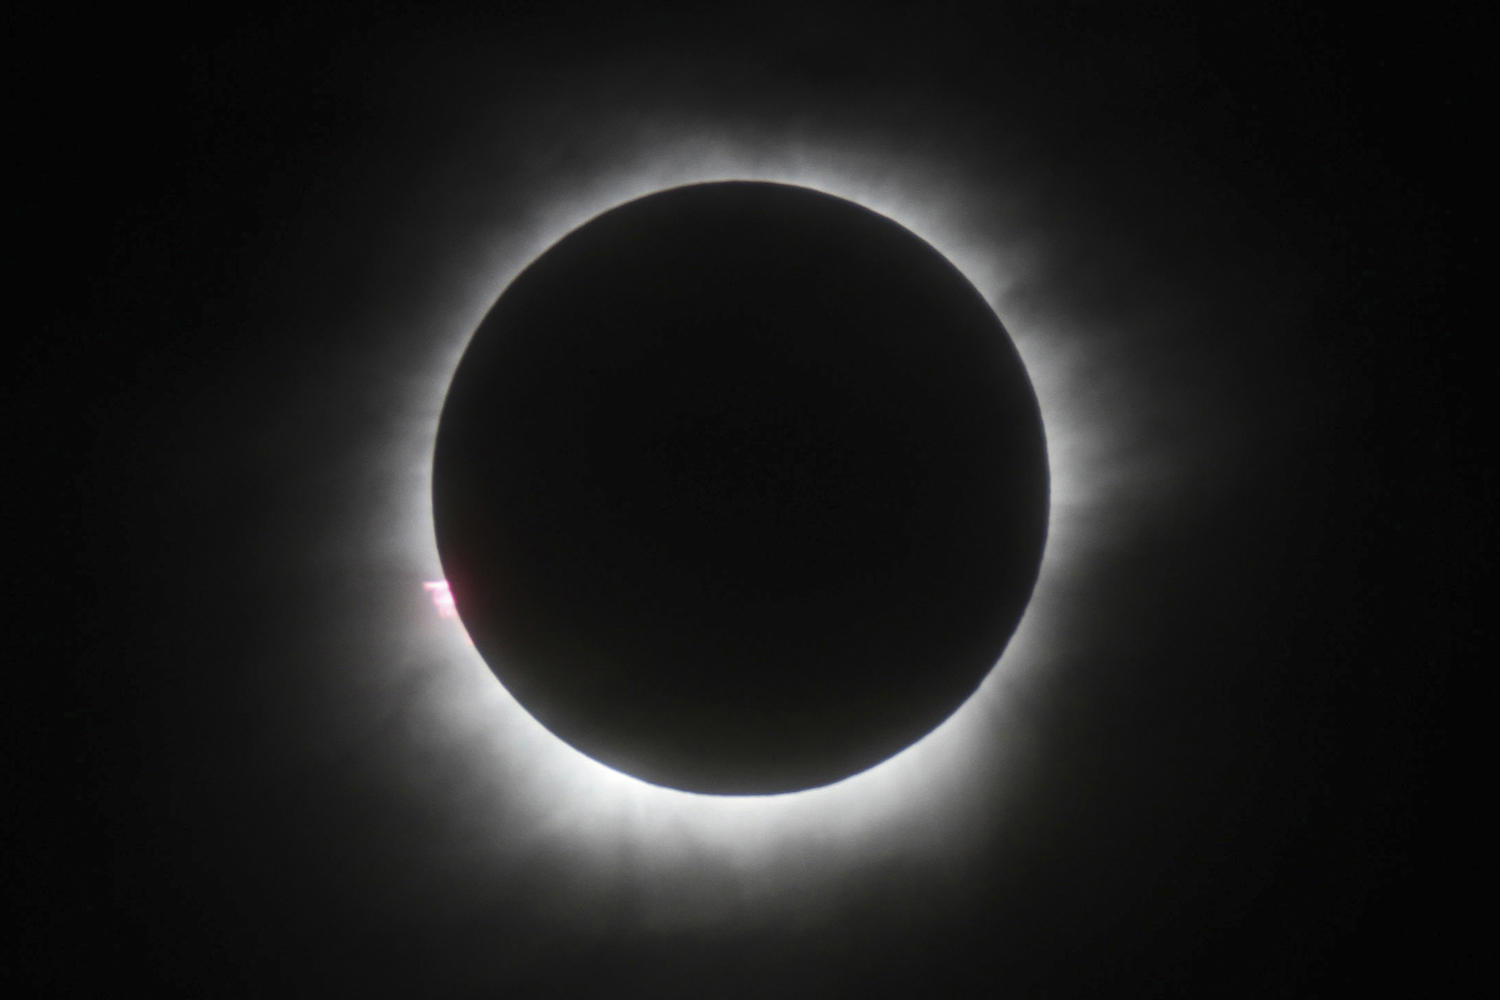 NASA offers advice on safe viewing of the Great American Eclipse